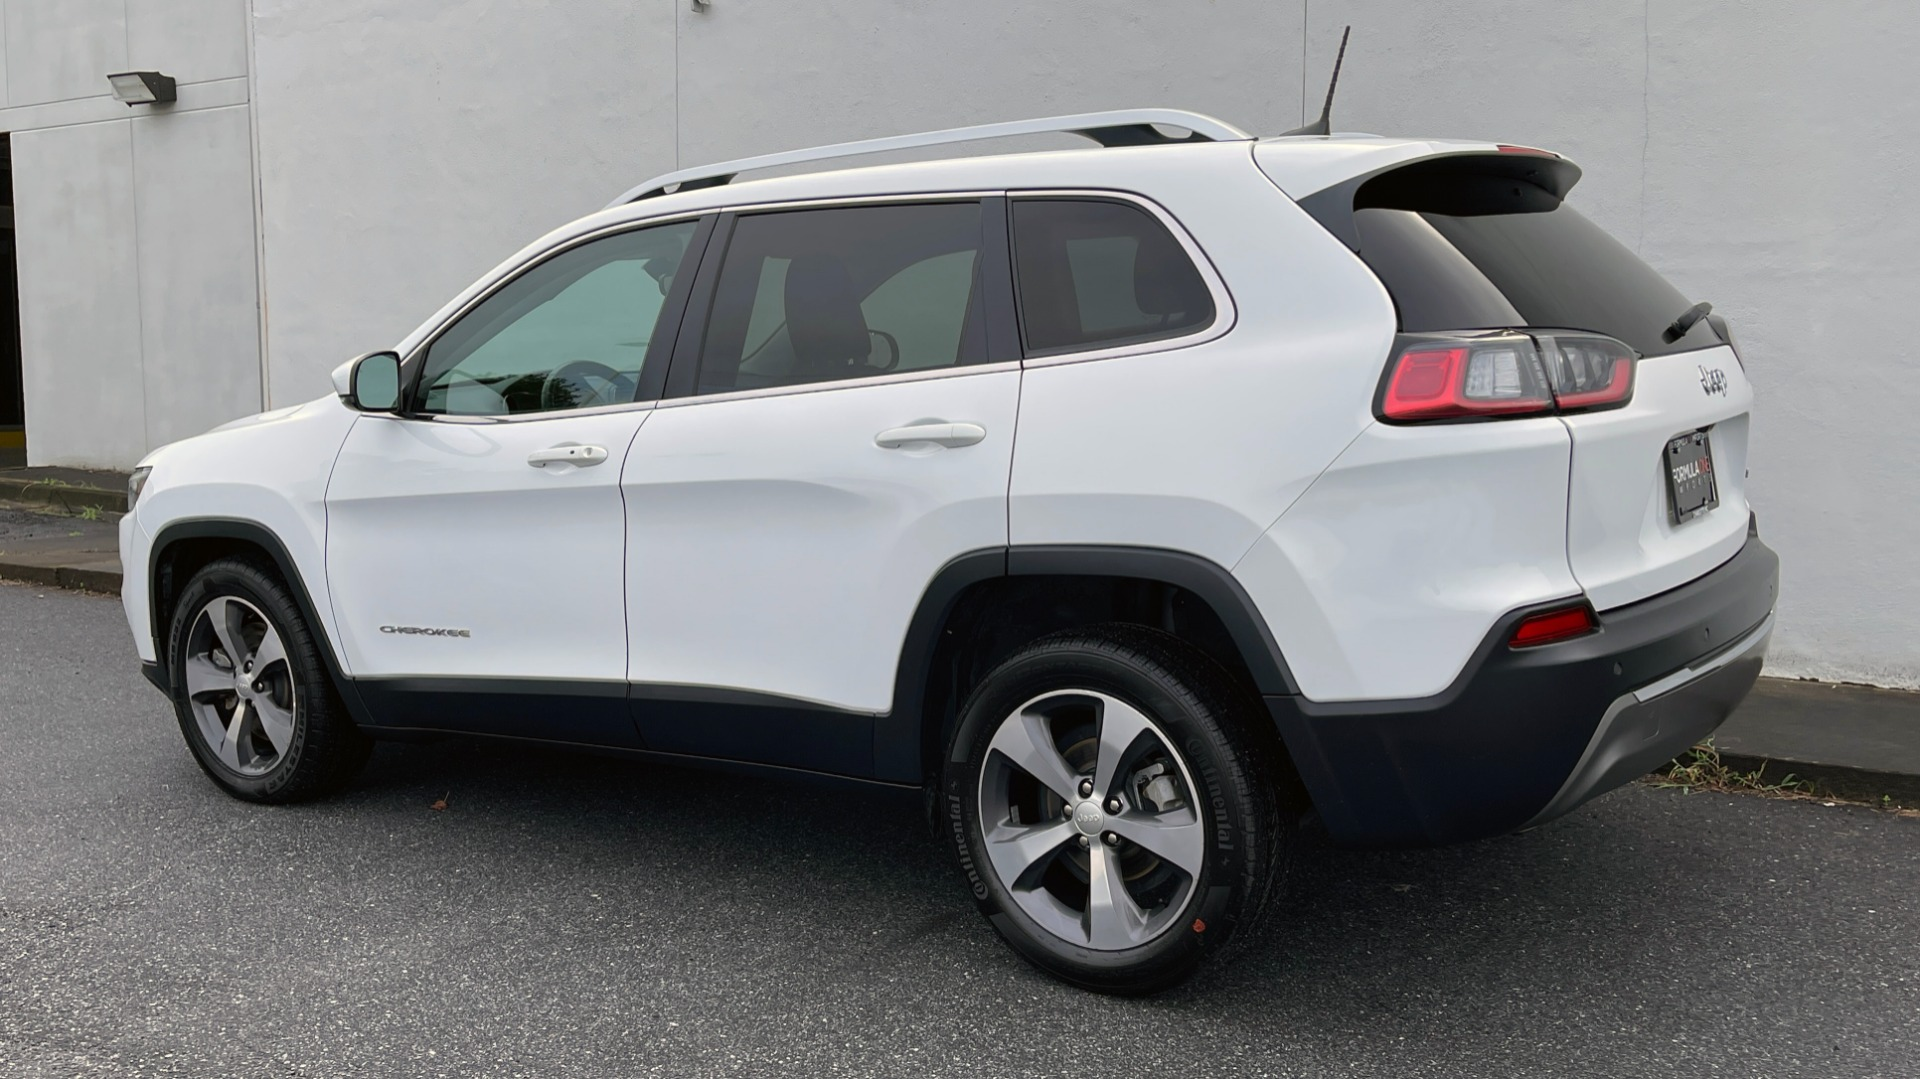 Used 2019 Jeep CHEROKEE LIMITED 2.4L / FWD / APPLE CARPLAY / KEYLESS-GO / REARVIEW for sale $24,395 at Formula Imports in Charlotte NC 28227 3